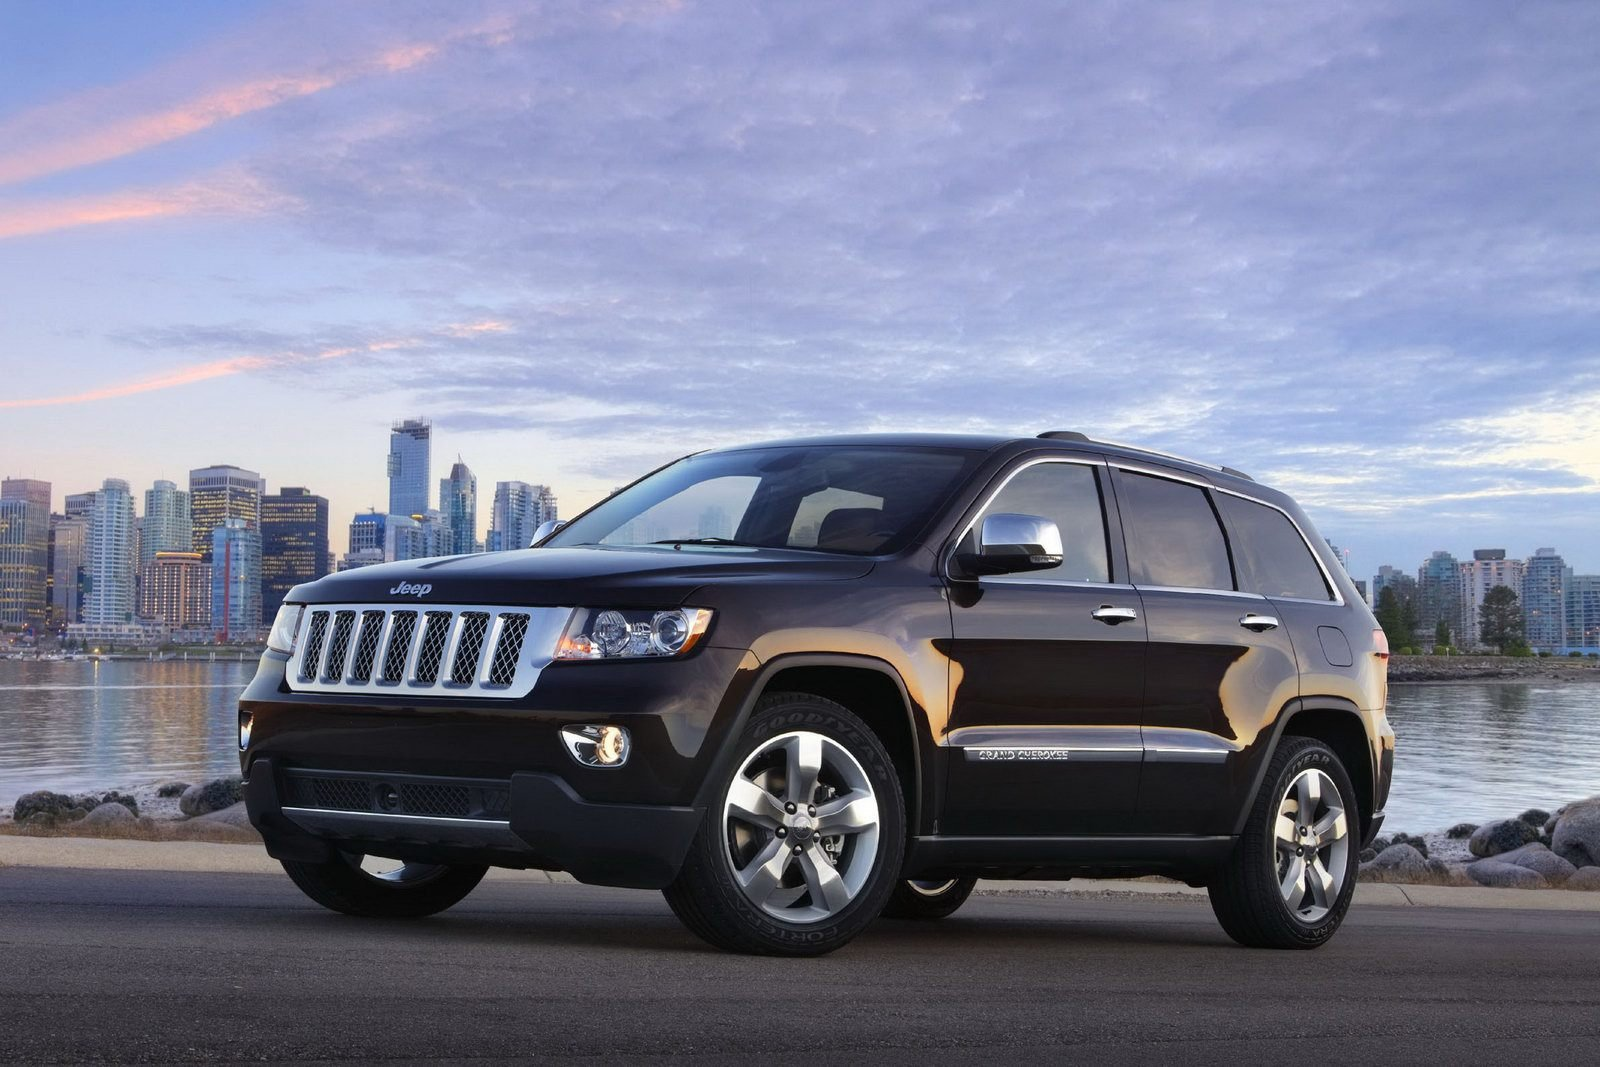 Jeep Dealership Los Angeles >> 2010 Jeep Grand Cherokee Overland Summit Review - Top Speed